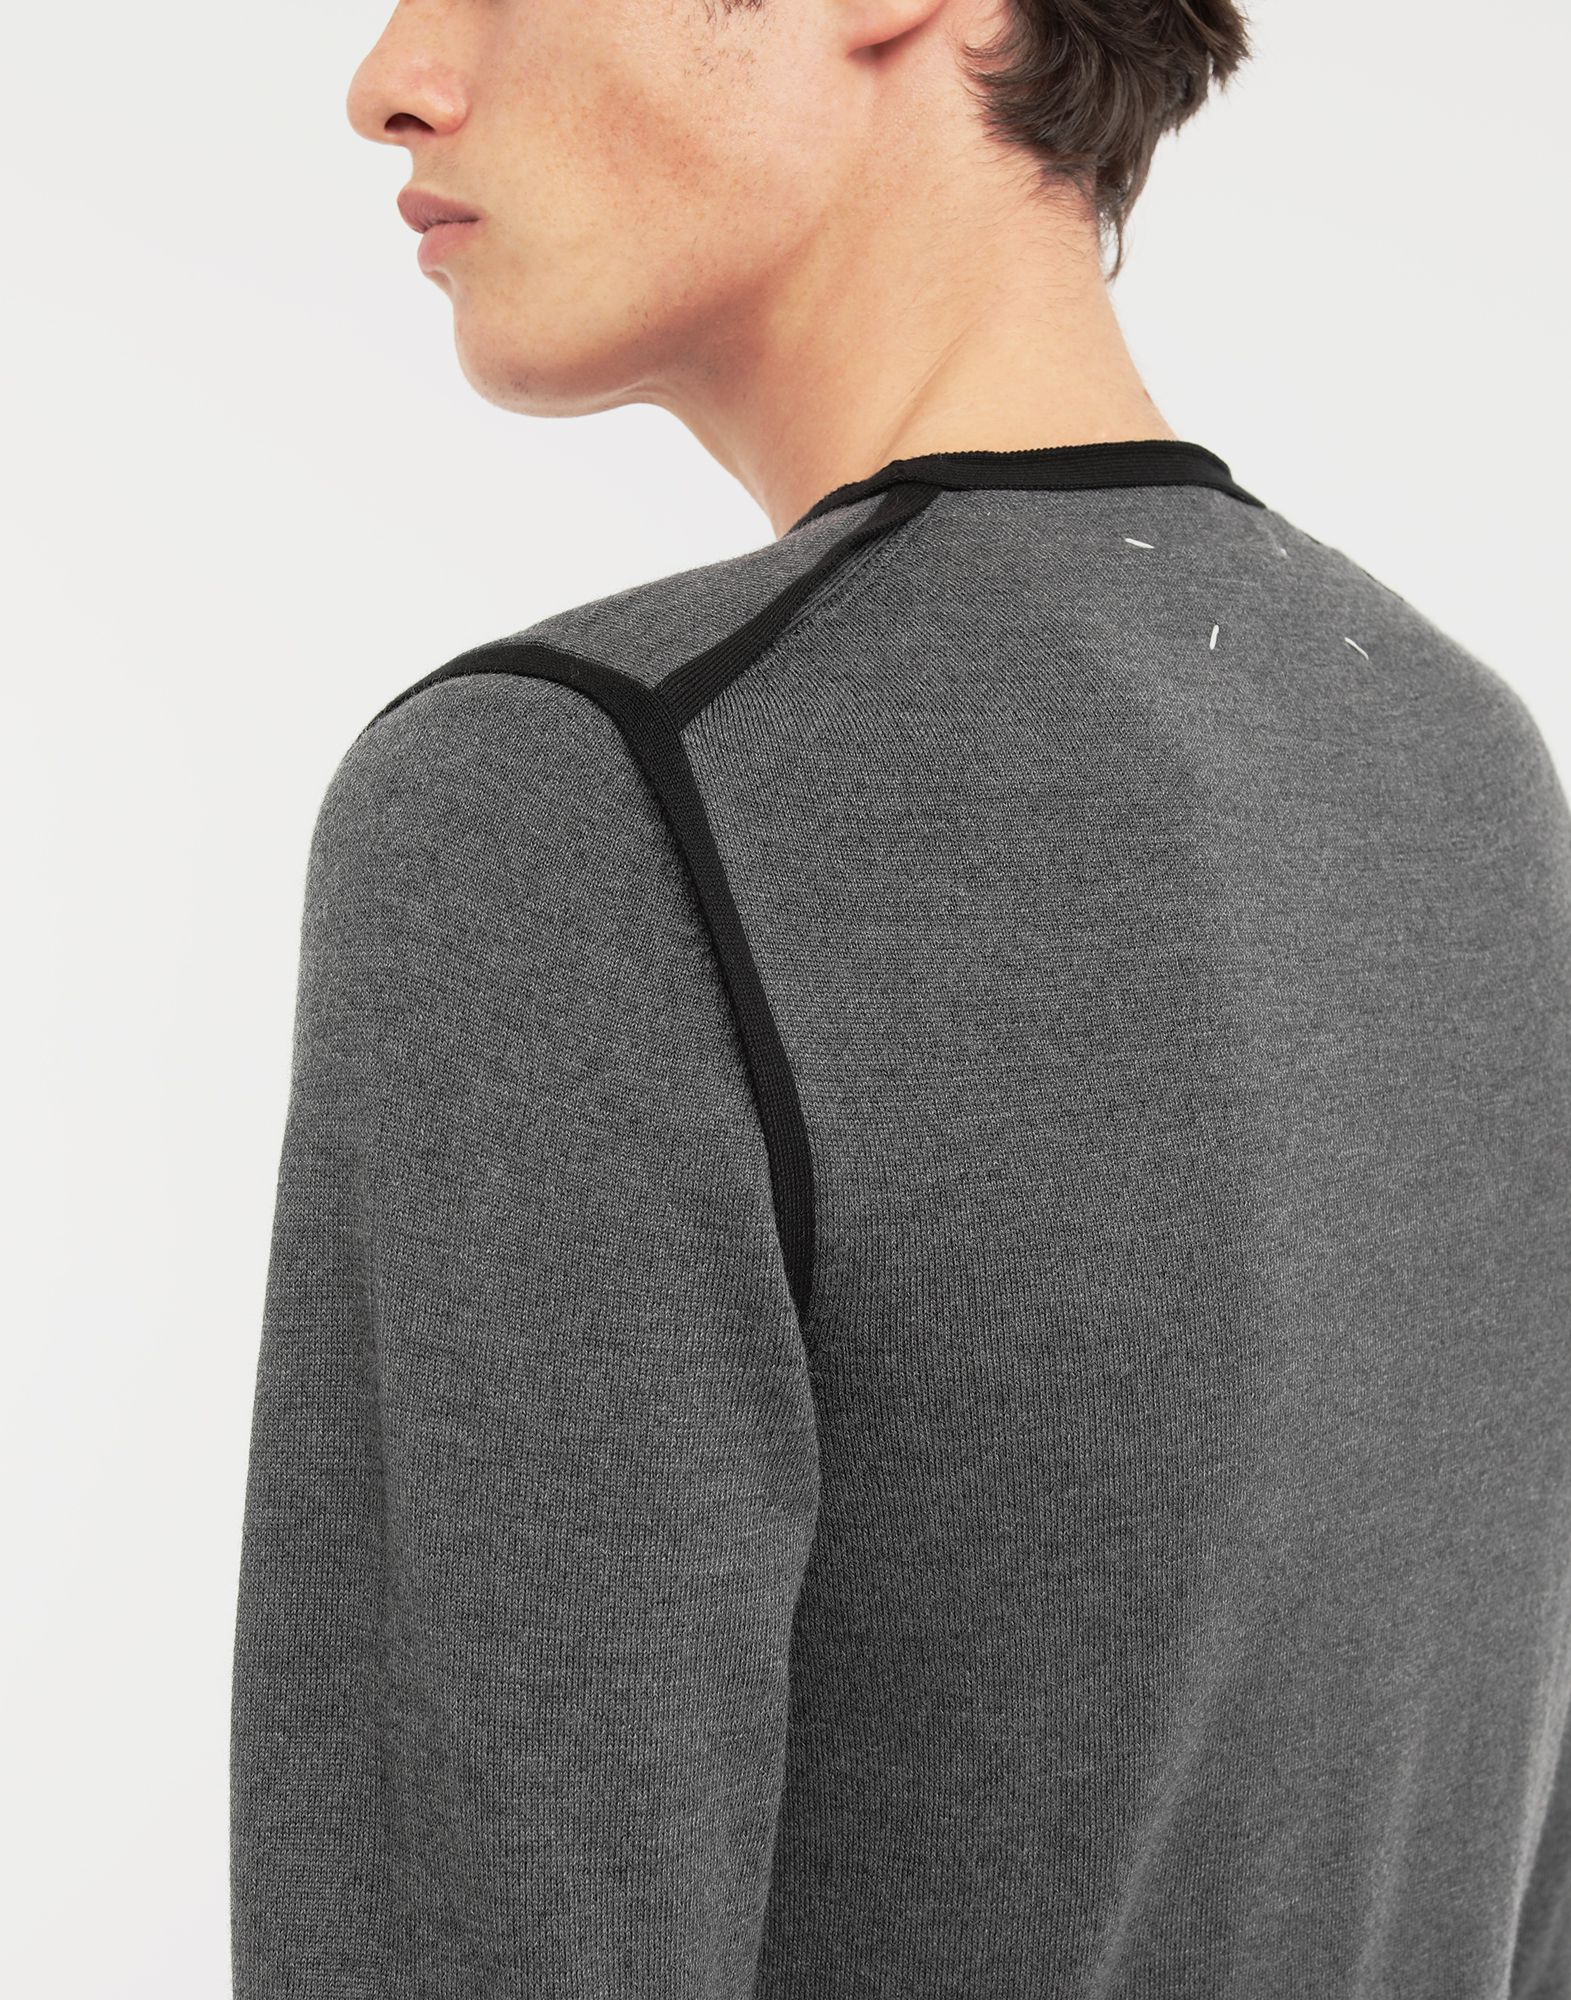 MAISON MARGIELA Cotton-trimmed knit jersey pullover Crewneck sweater Man b